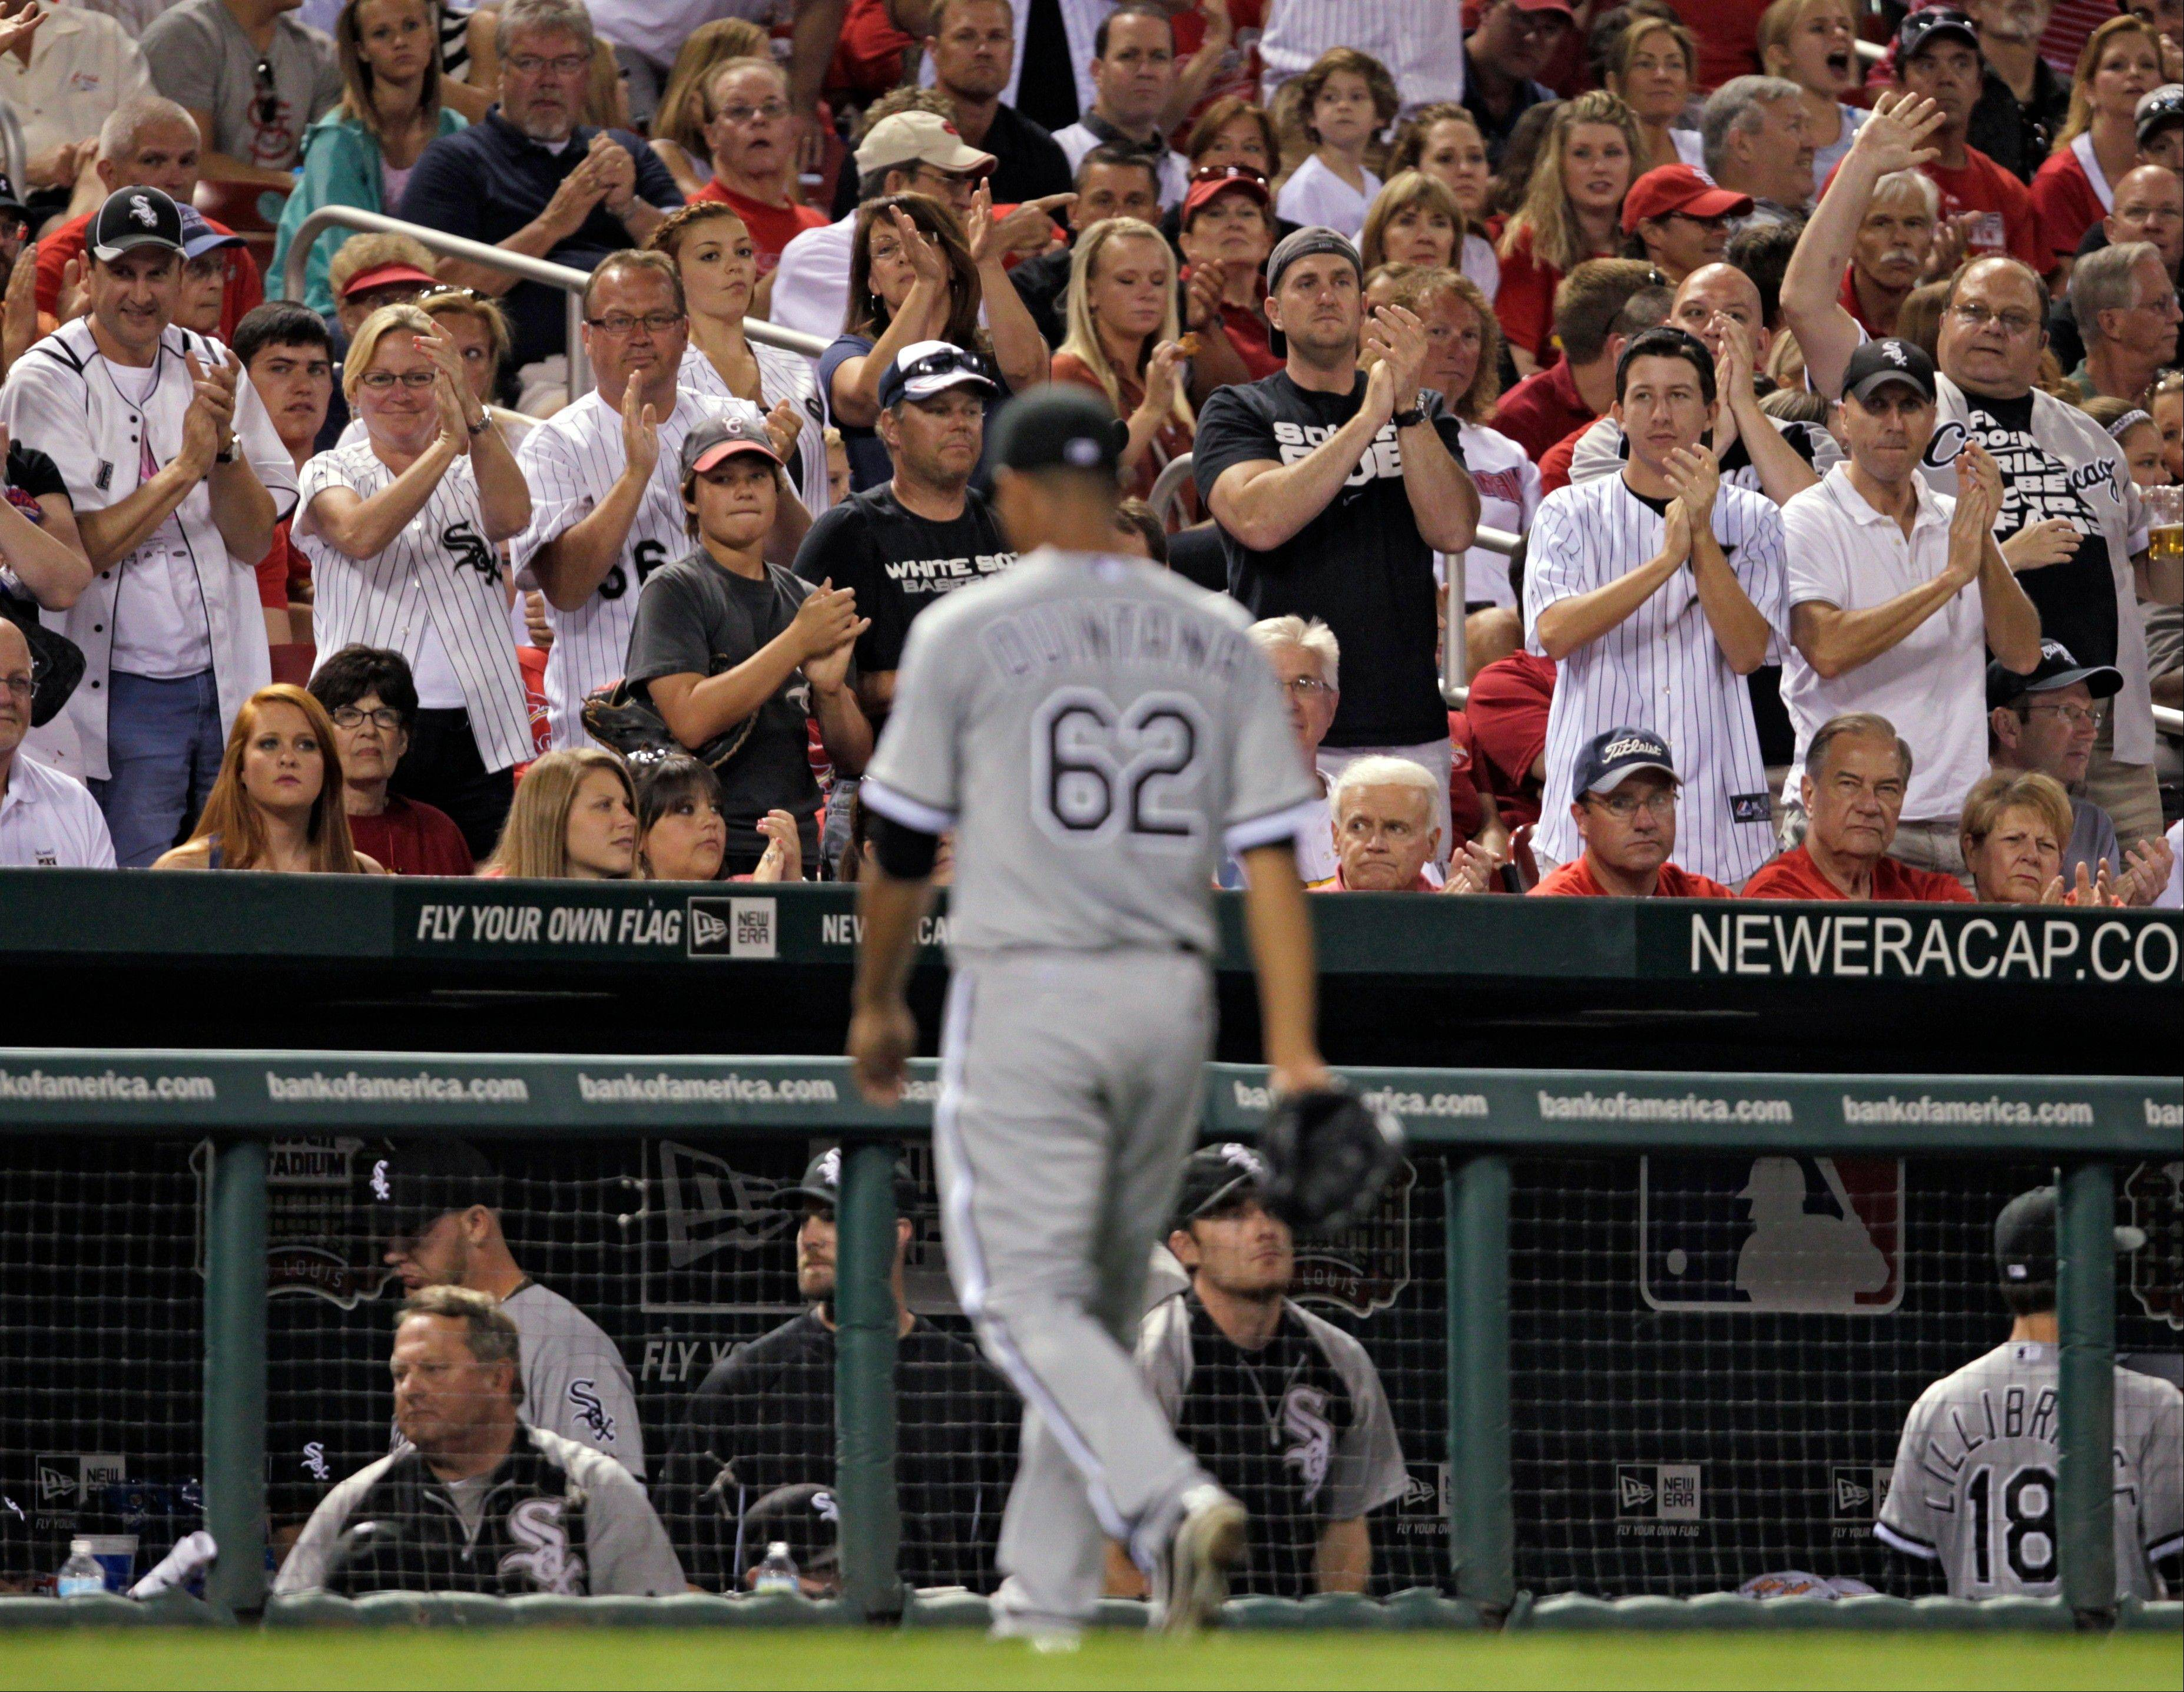 Chicago White Sox fans cheer as White Sox starting pitcher Jose Quintana leaves in the sixth inning Tuesday during a game against the St. Louis Cardinals in St. Louis. Quintana lasted 5 1/3 innings, giving up one run on 10 hits.